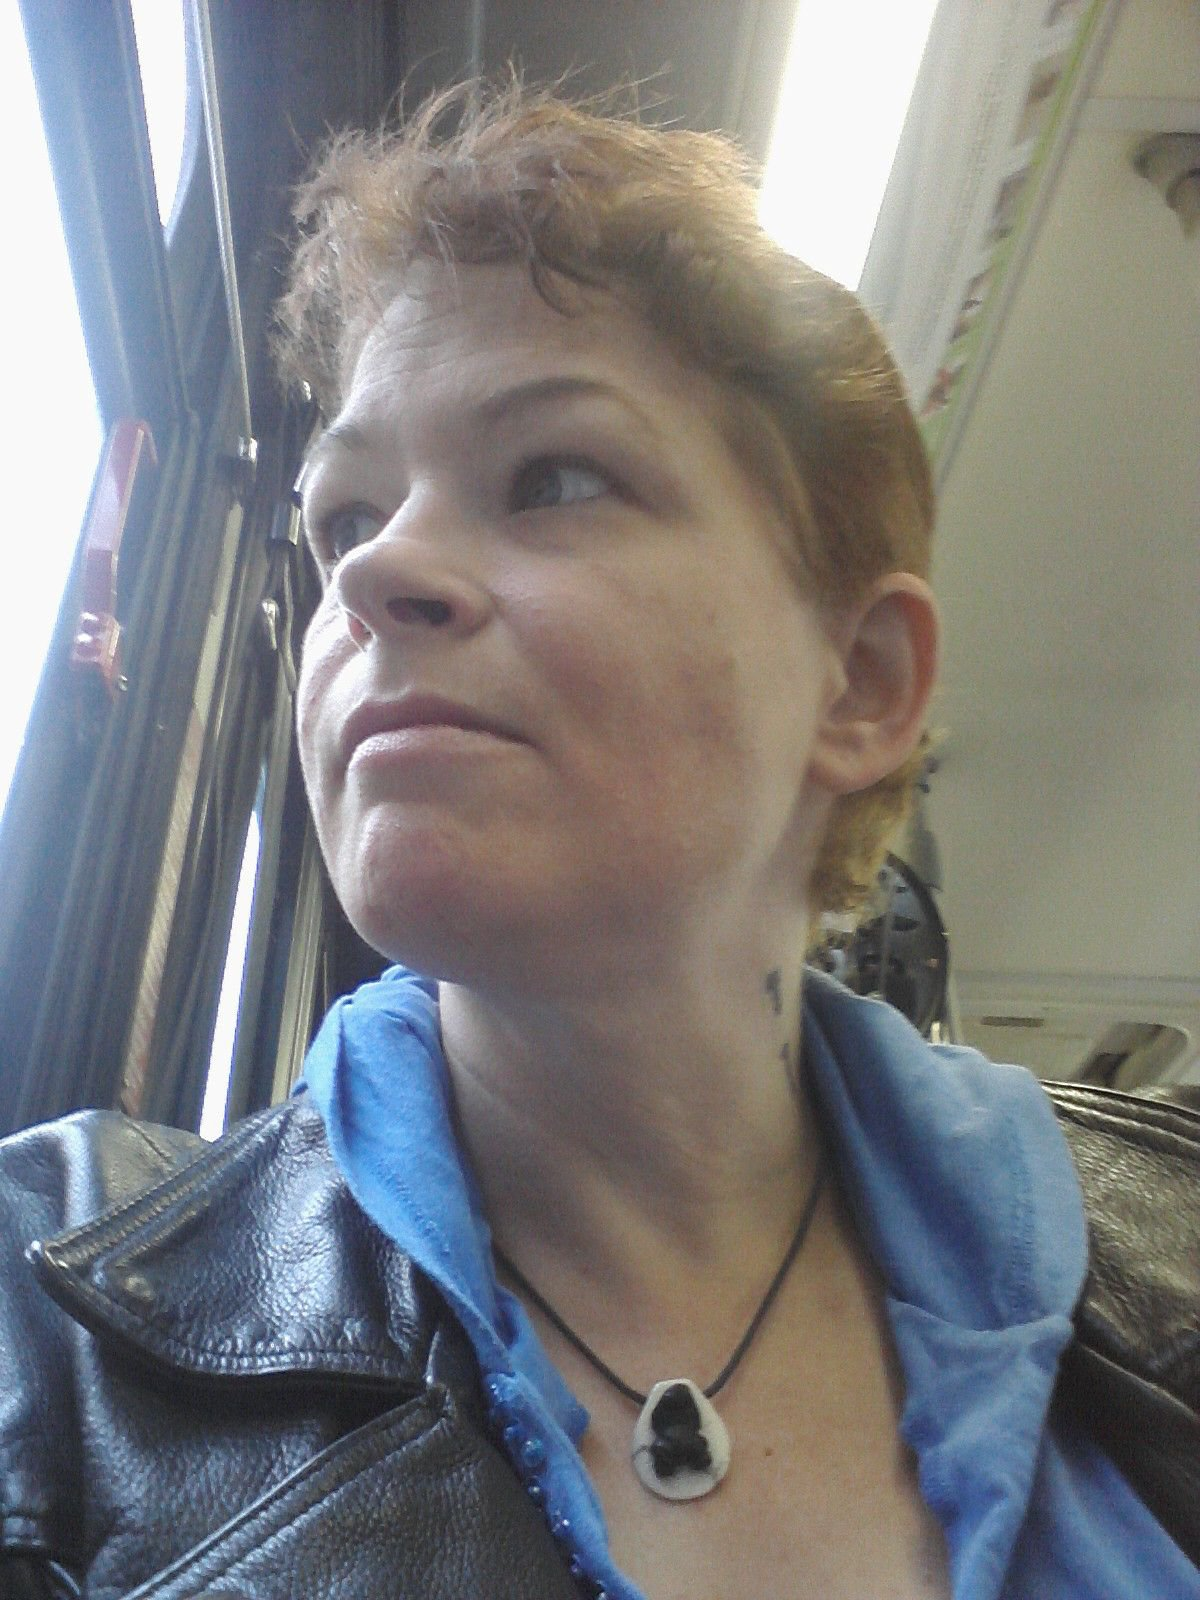 Me Riding on the bus to my appointment at the UWMC